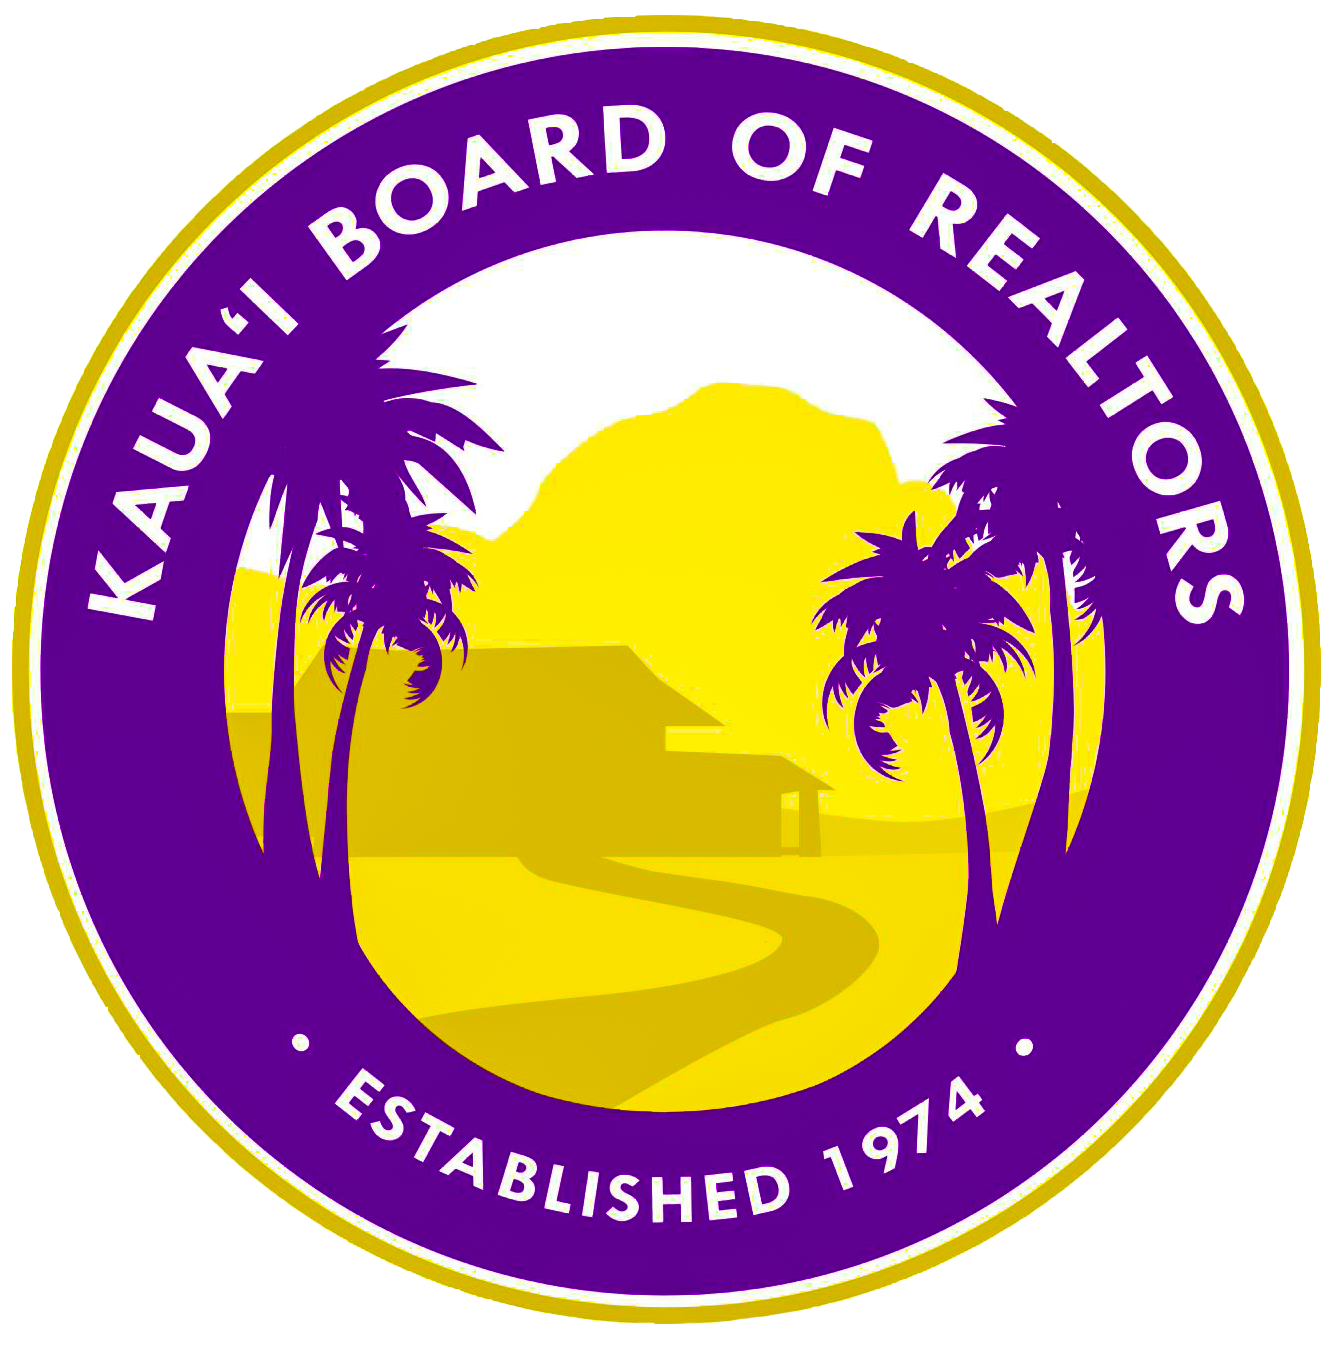 National association of realtors clipart svg library download Pay Dues & MyPVL | KauaiBoard.com svg library download